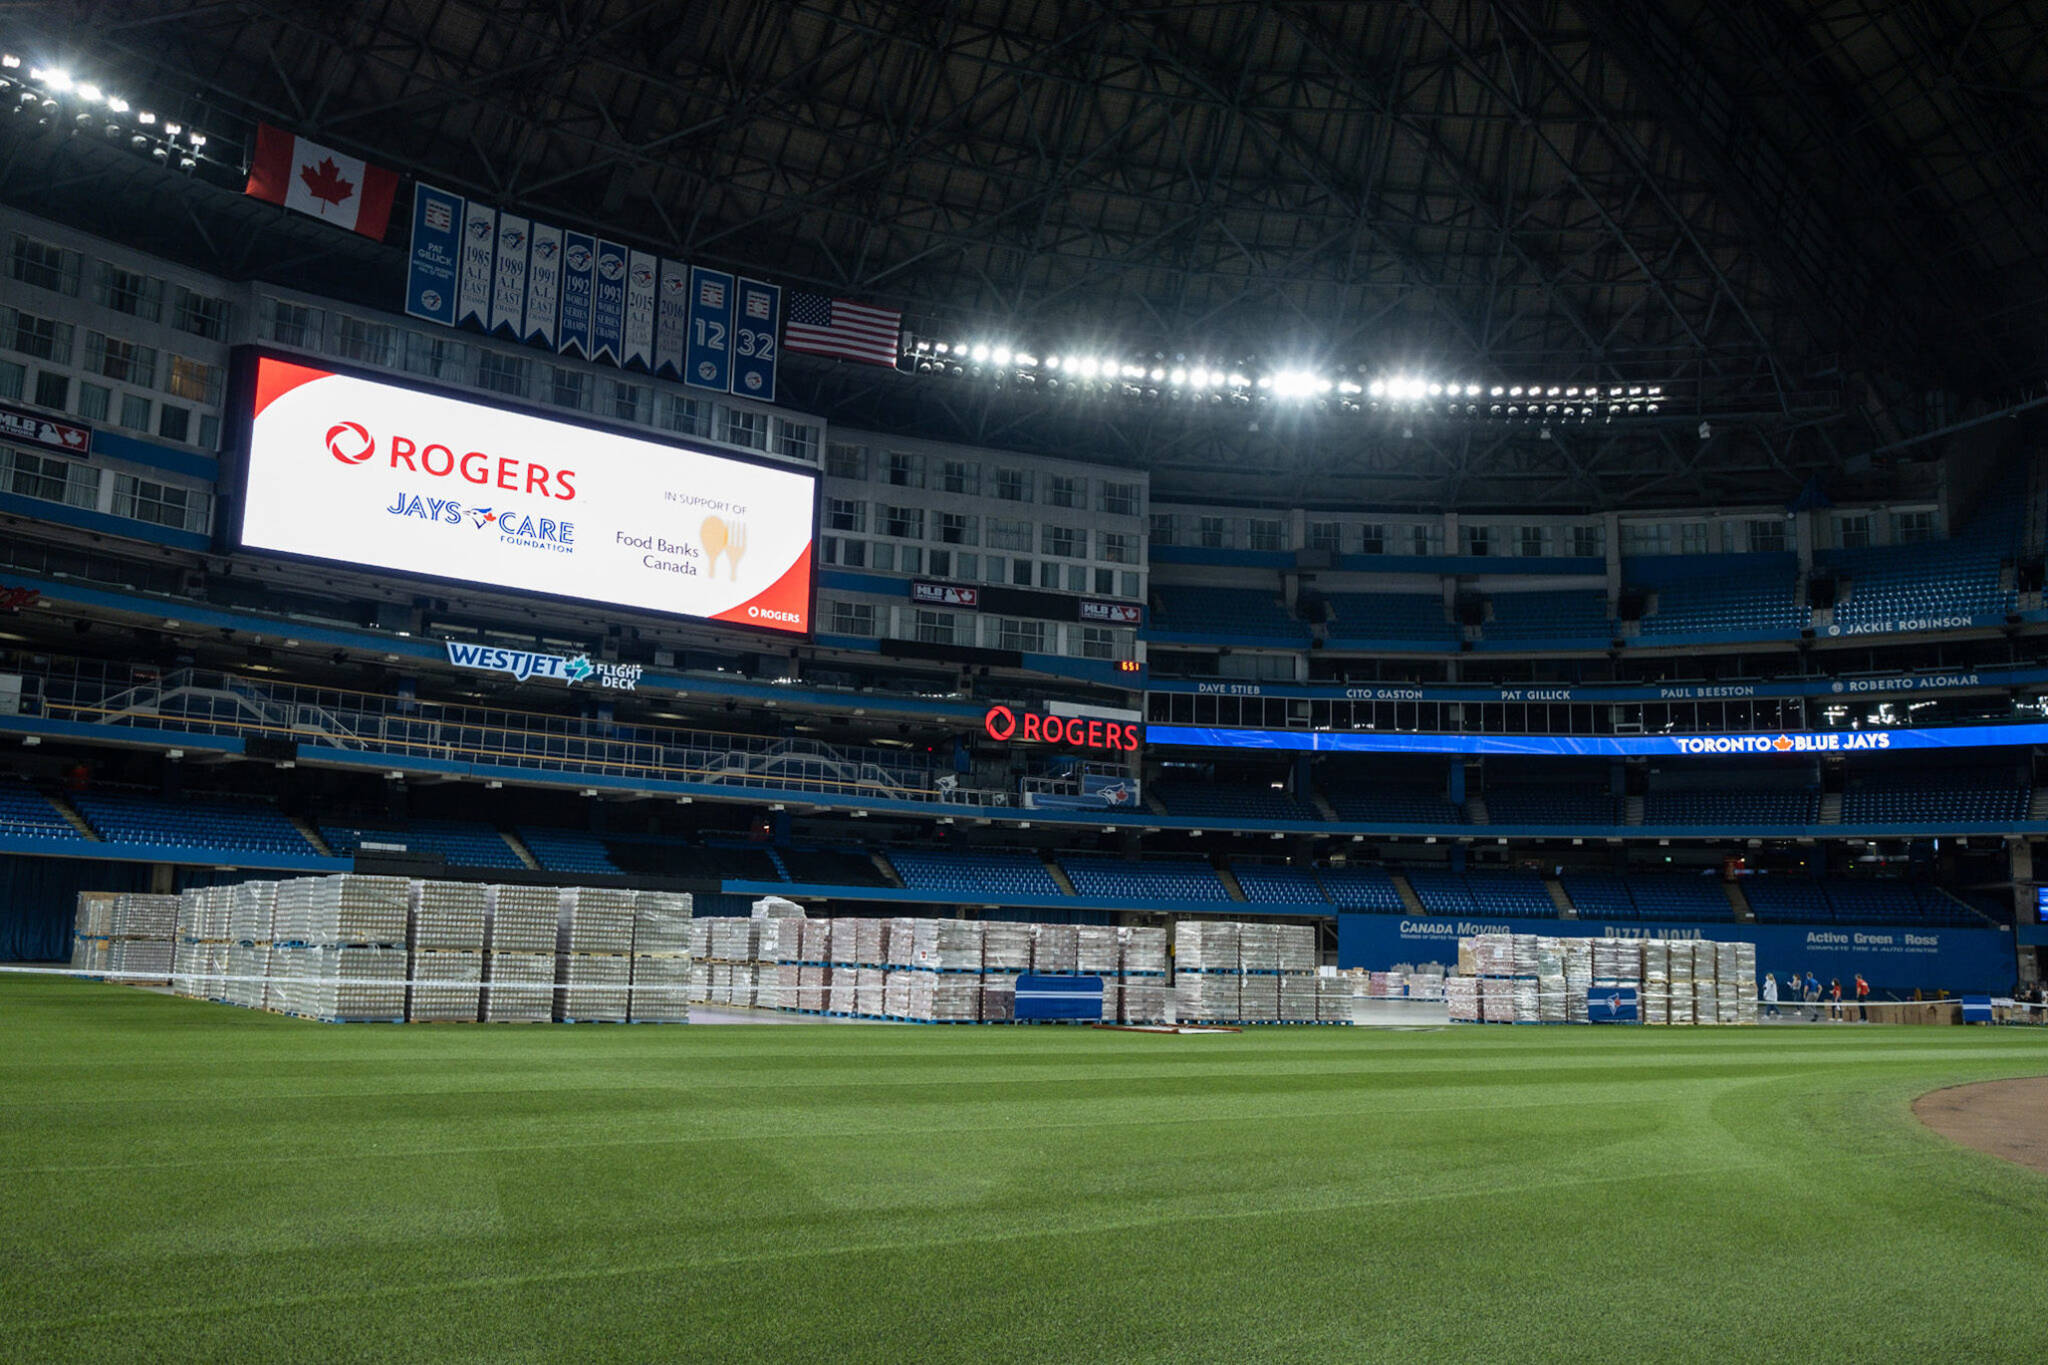 rogers Centre food bank